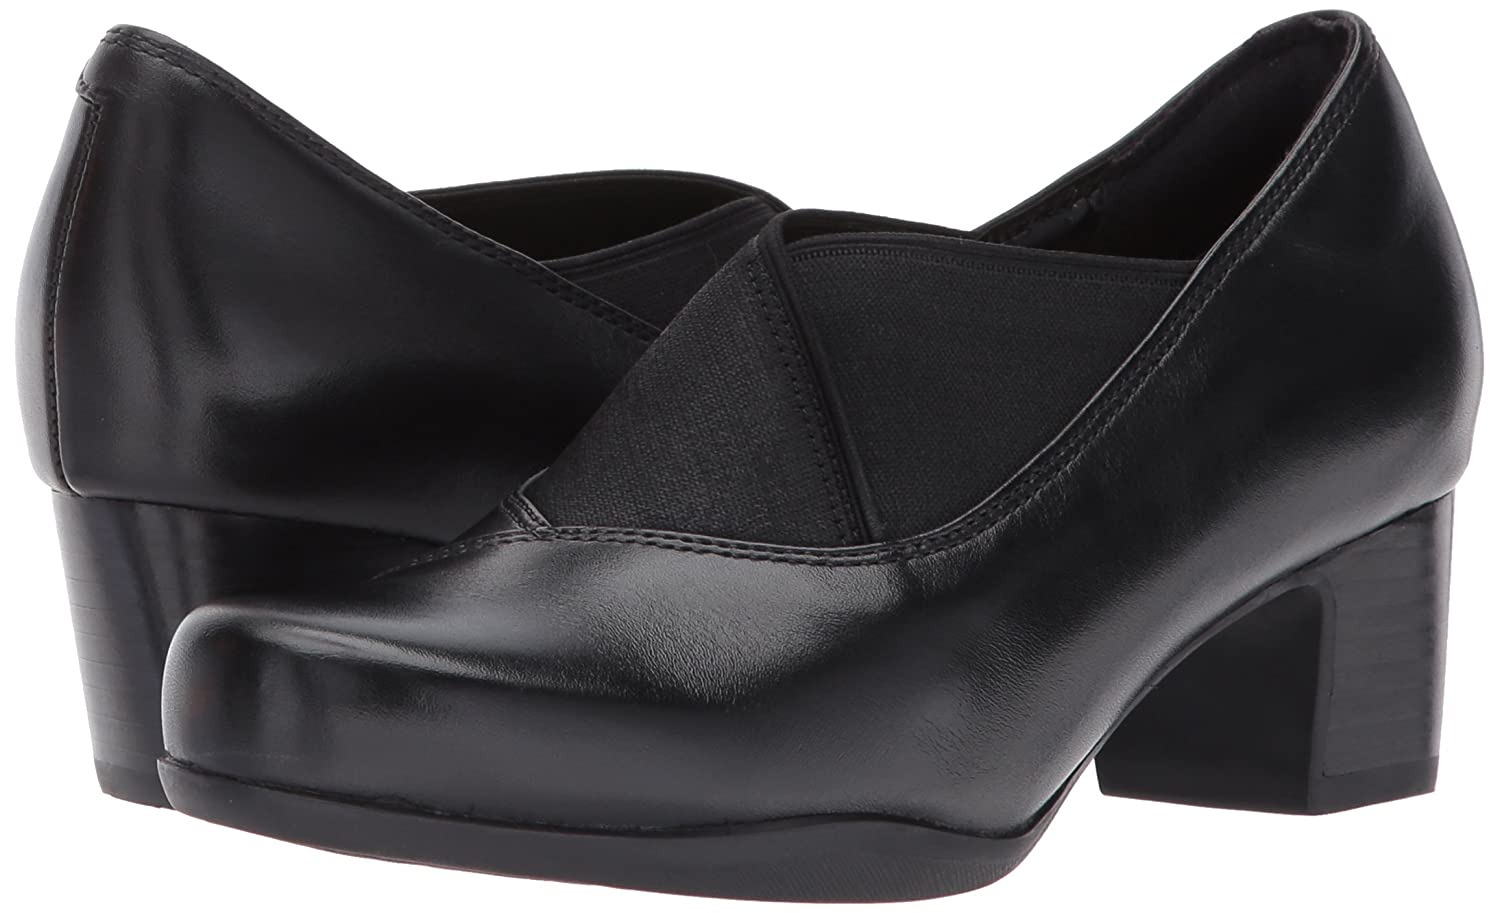 CLARKS Women's Rosalyn Olivia Slip-on Loafer B01MXXJWII 6.5 2W US|Black Combi